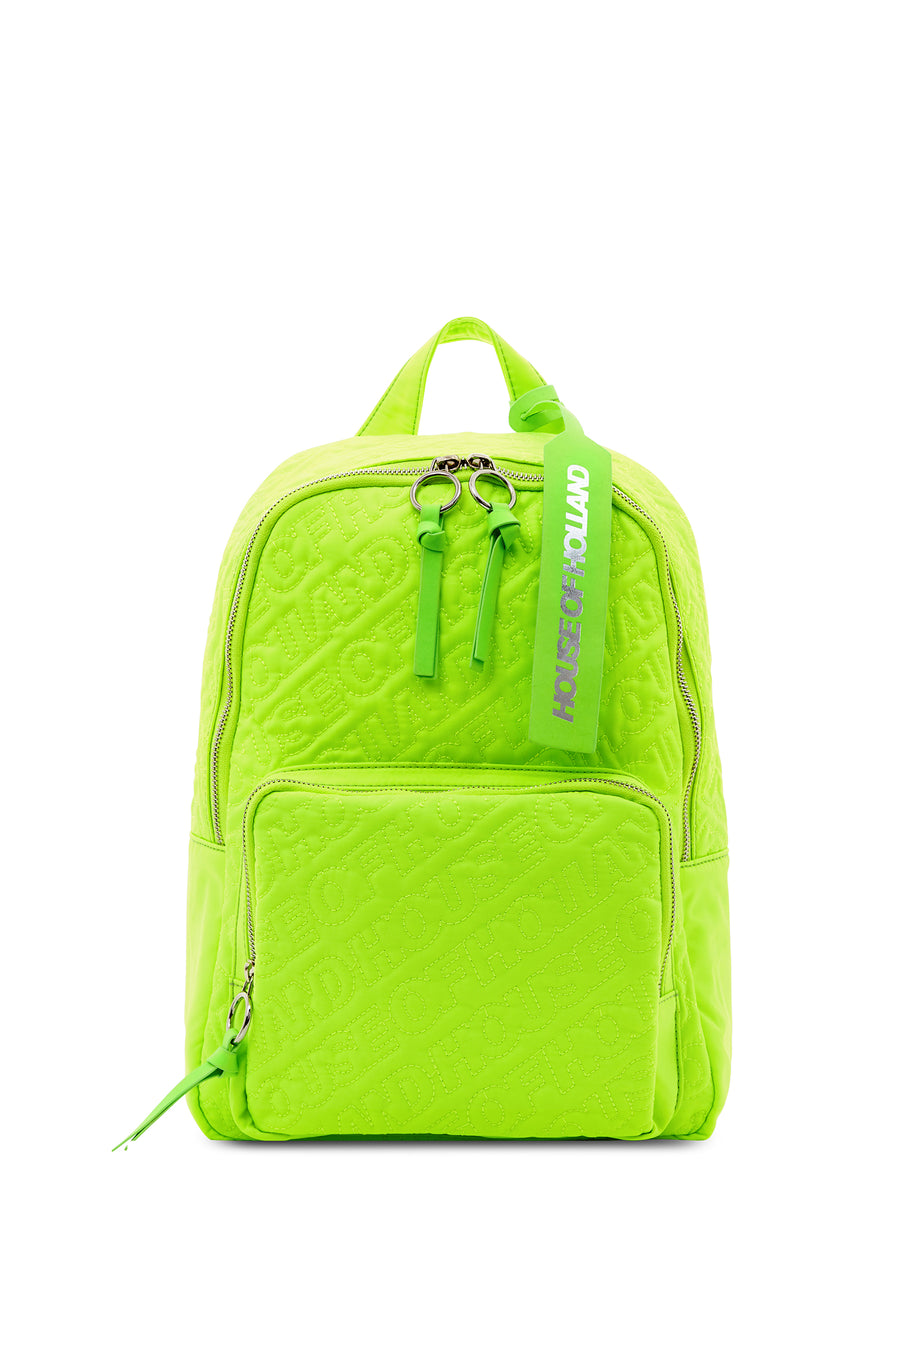 'HOH' Neon Green Embroidered Backpack